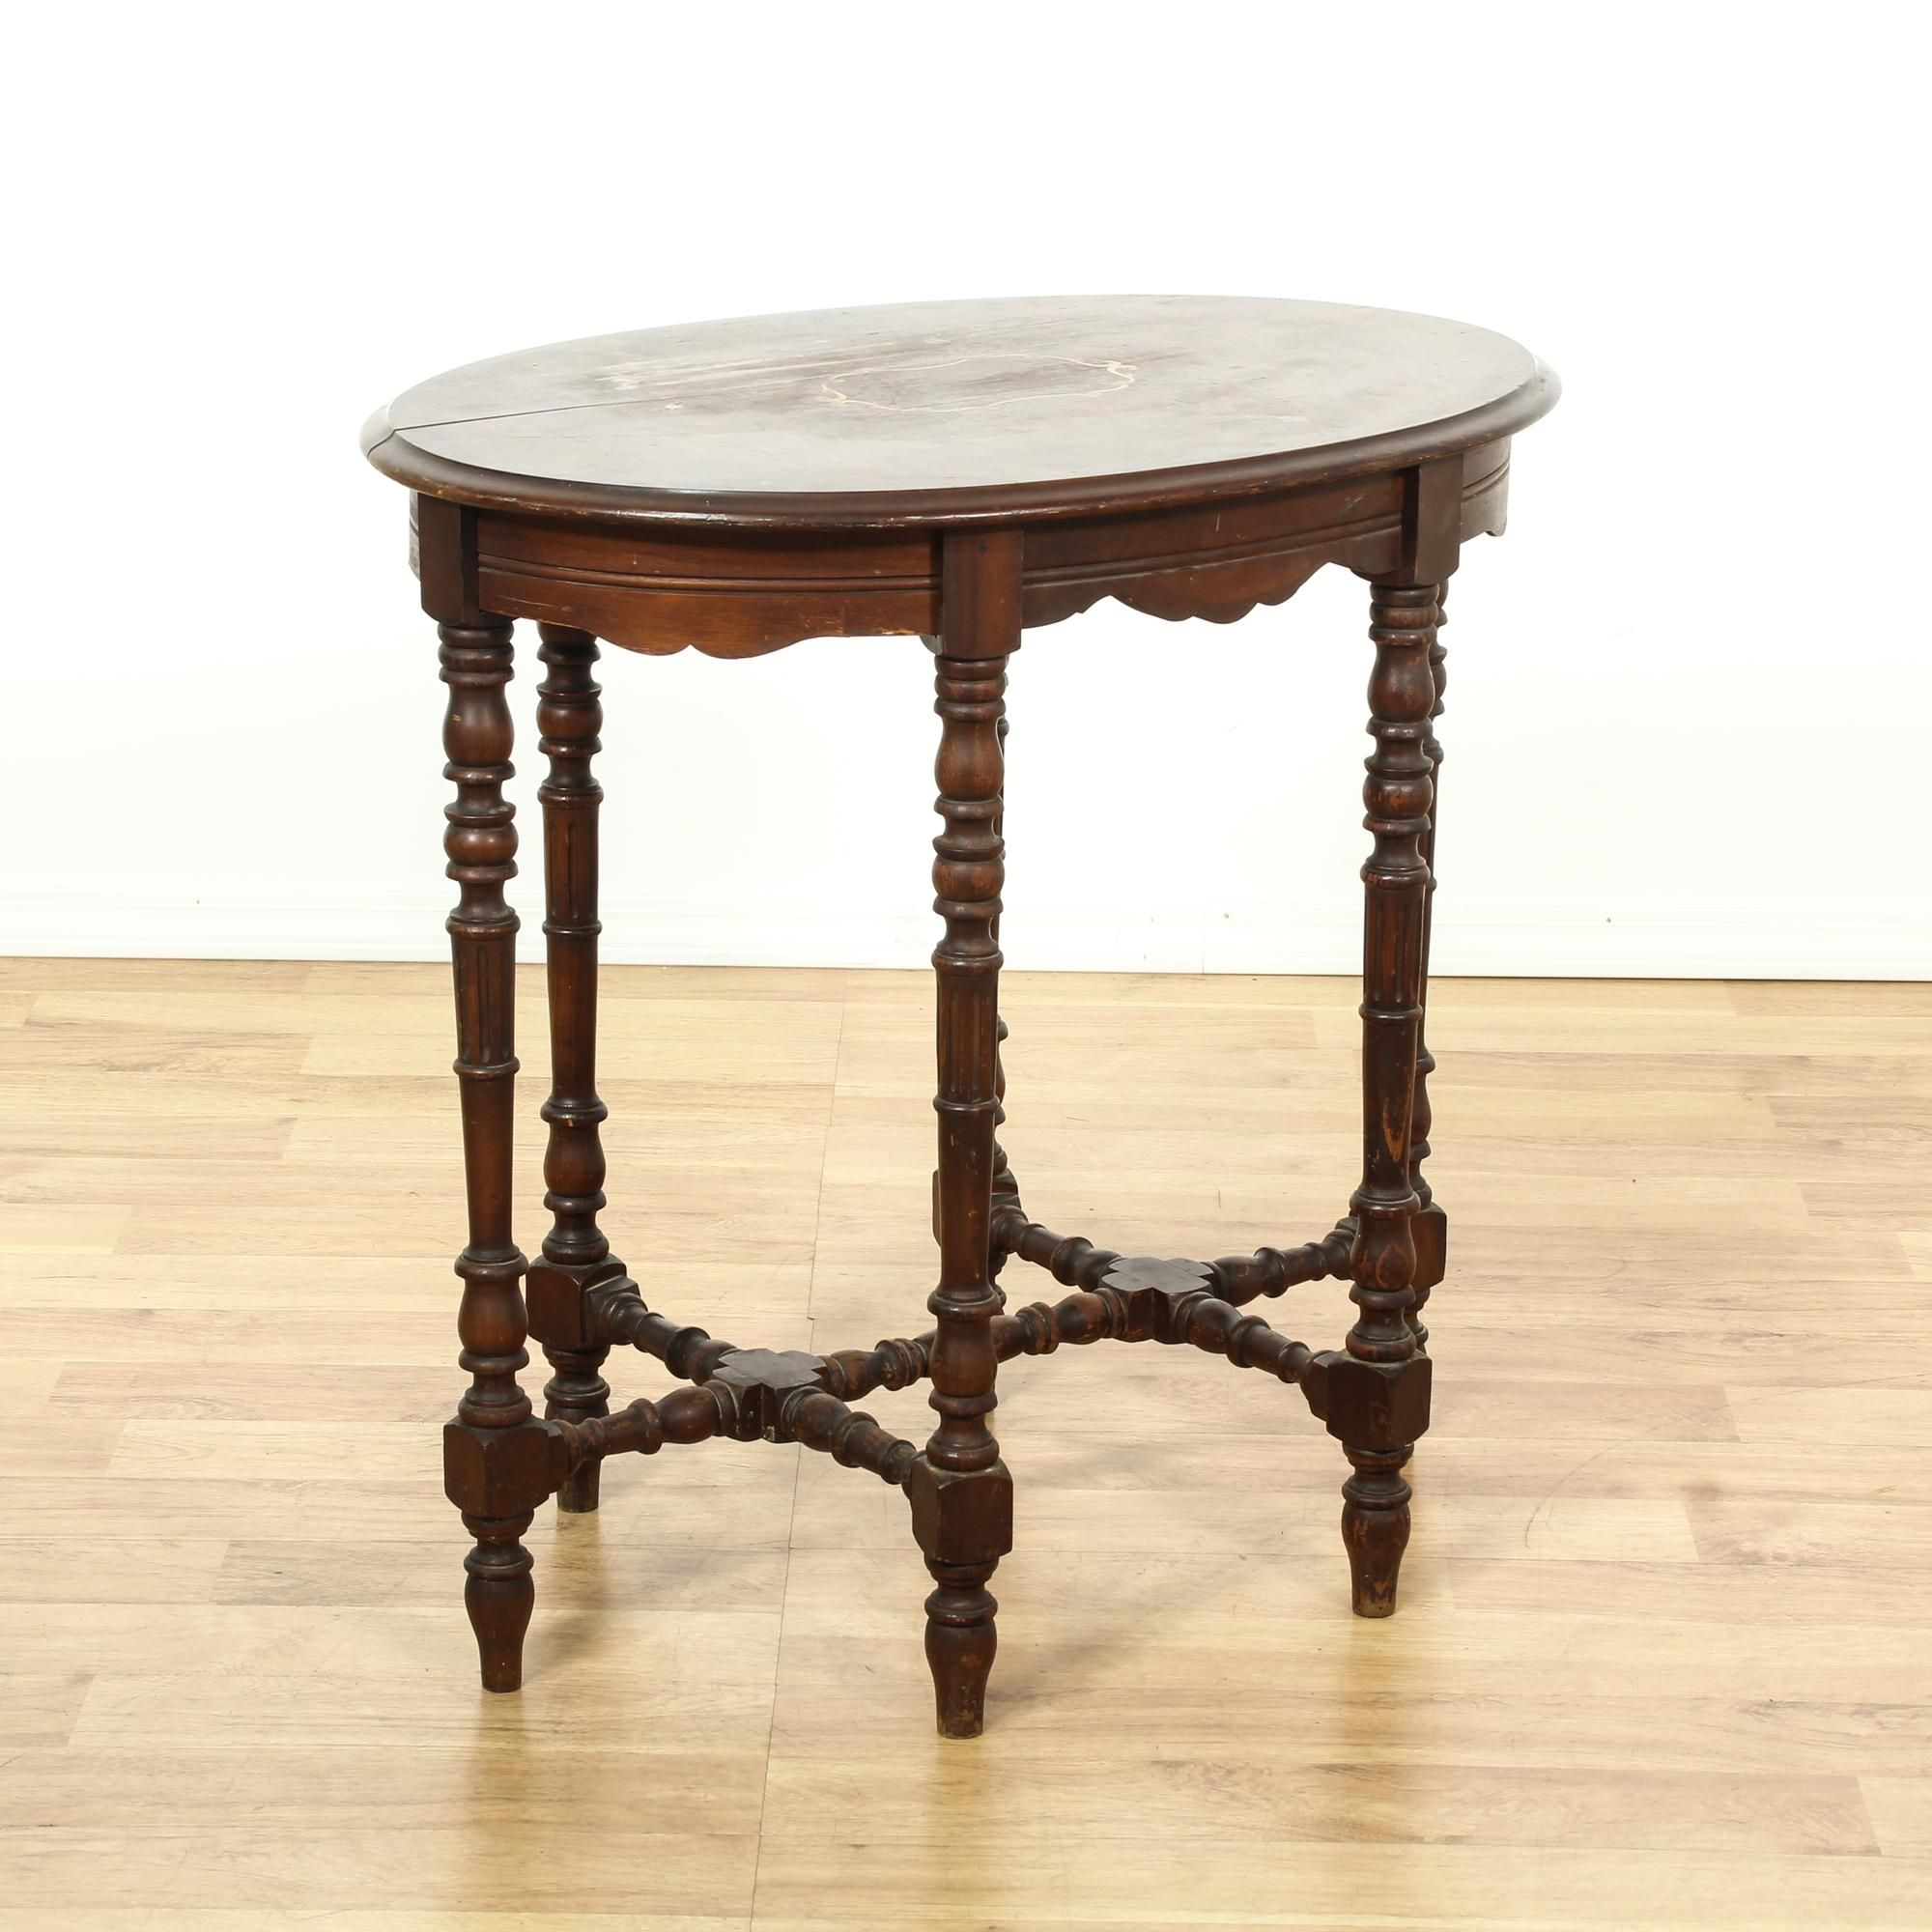 This Tall Side Table Is Featured In A Solid Wood With A Glossy Cherry  Finish. This End Table Has An Oval Table Top, Curved Base Trim And Ornate  Carved ...